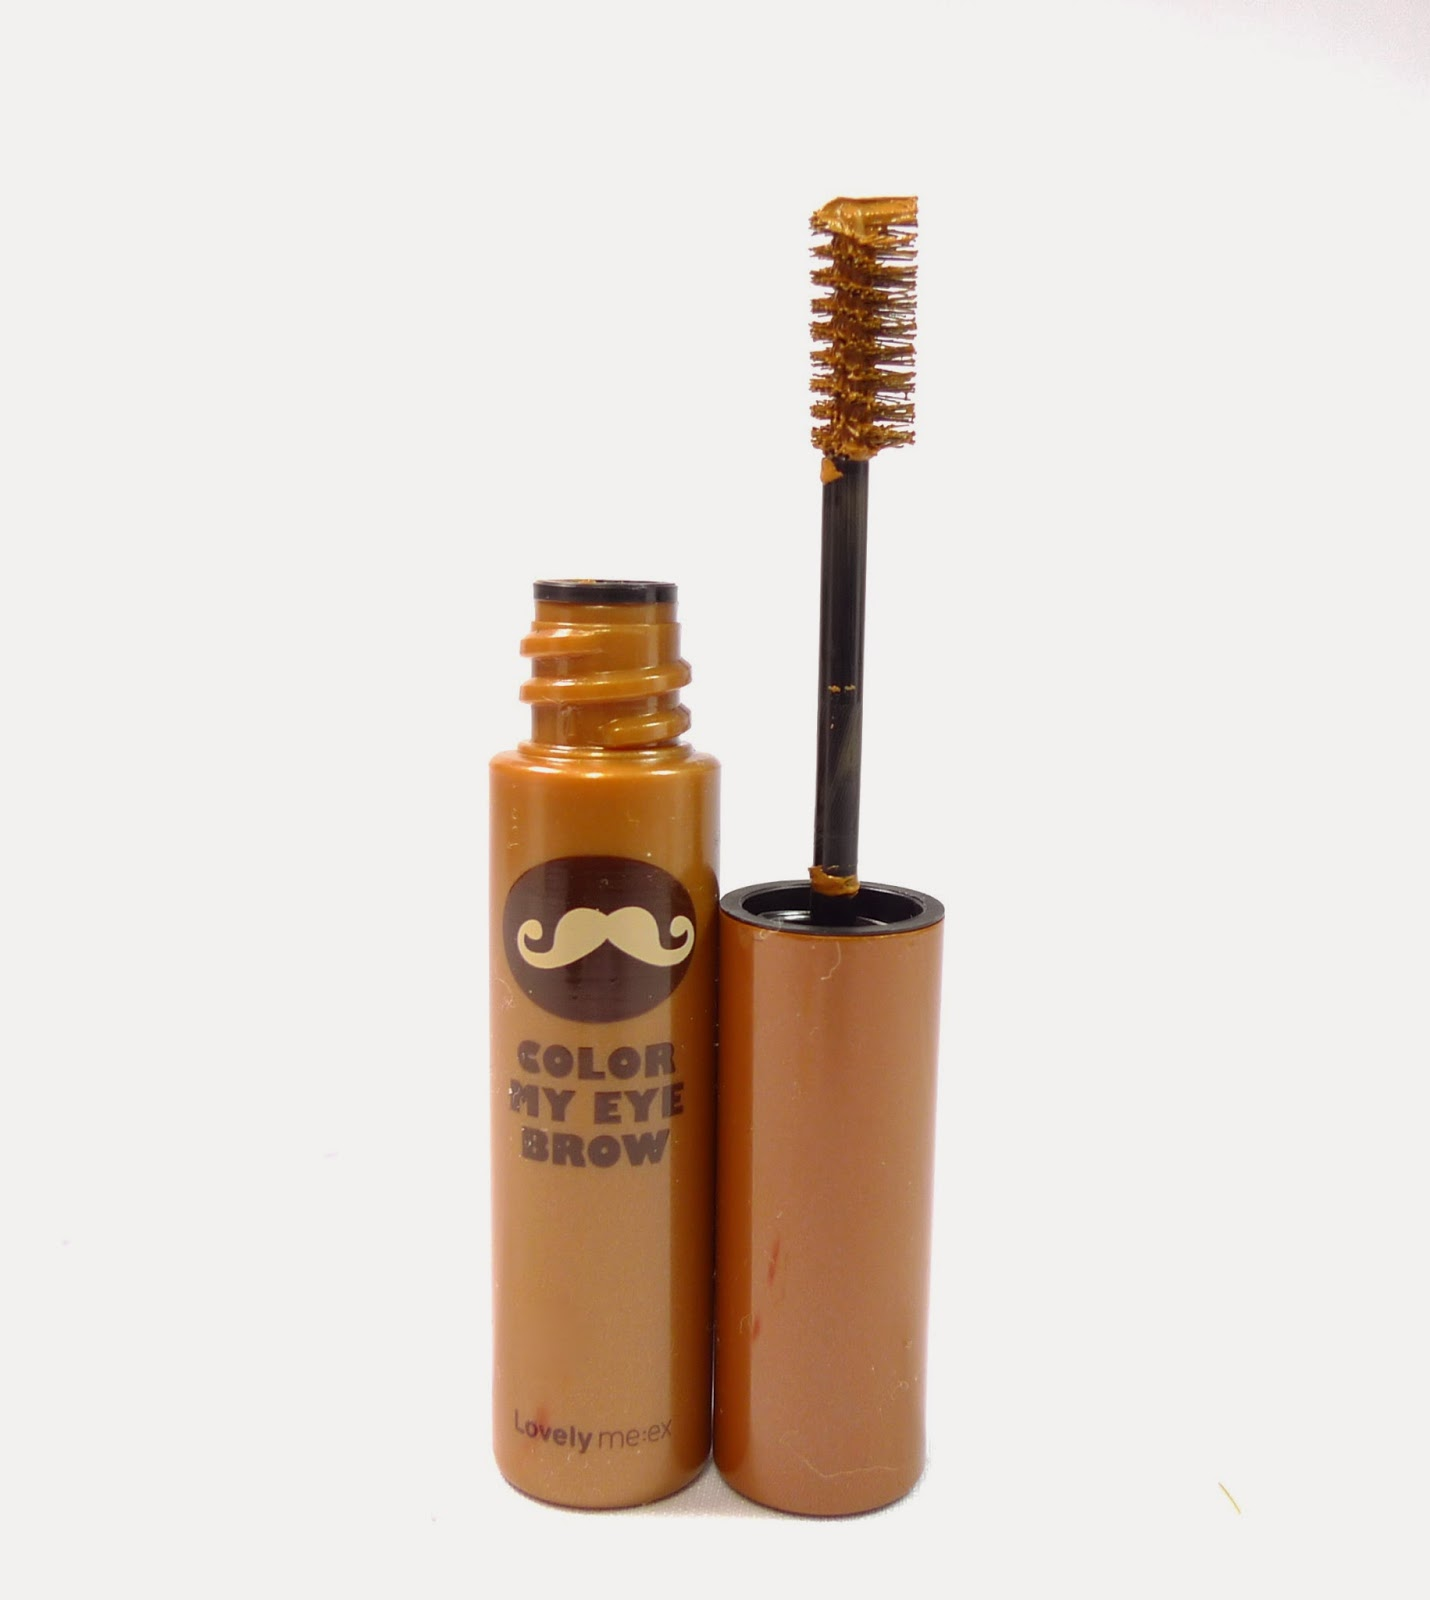 The Face Shop Lovely Meex Color My Eyebrow In Light Brown 02 Review